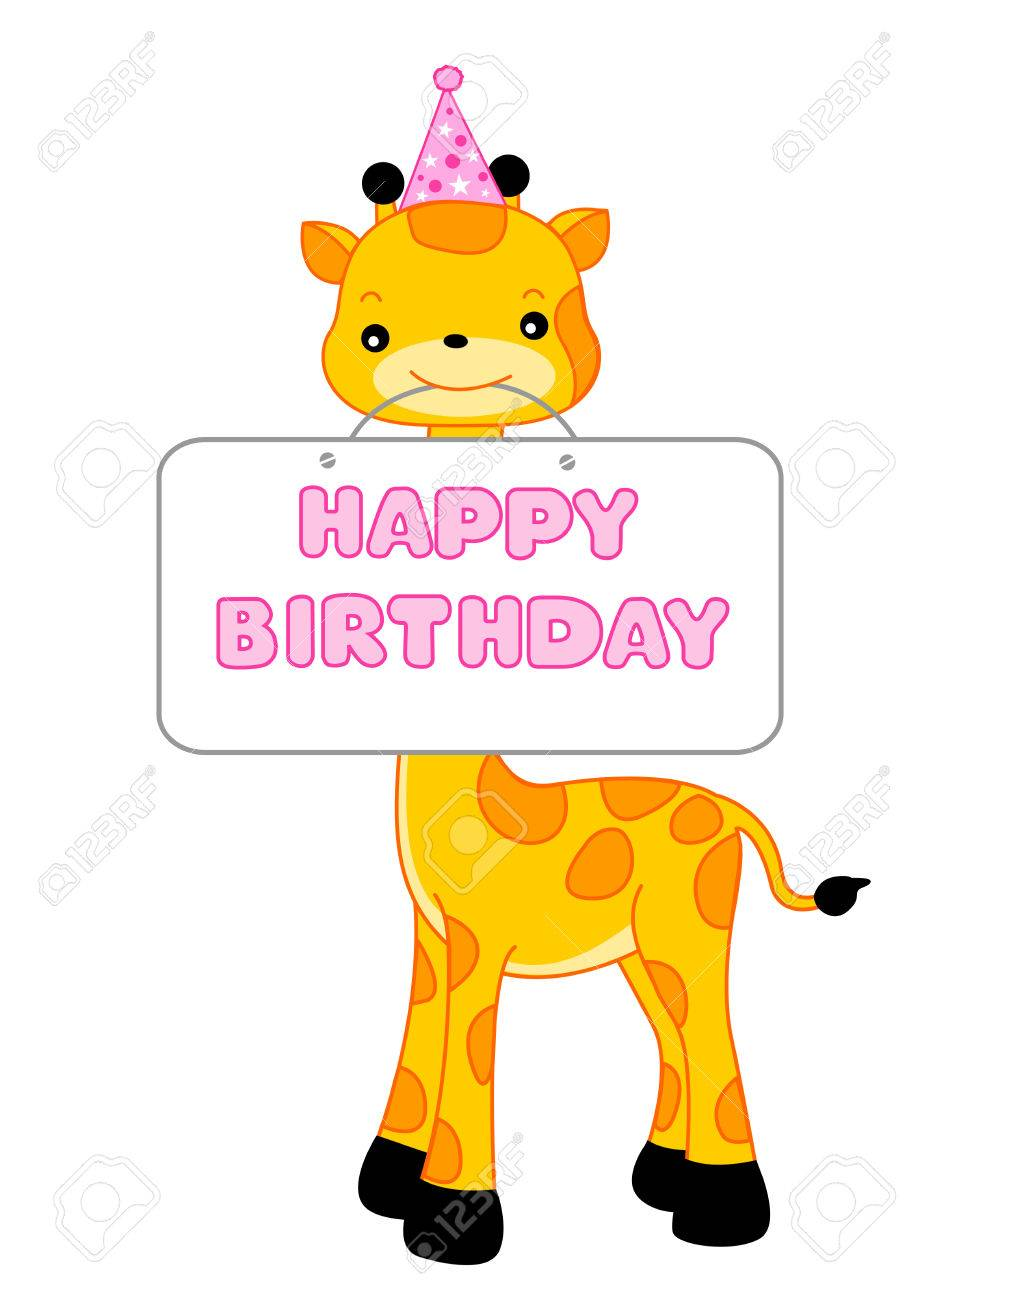 Cute Giraffe Wearing A Party Hat And Holding A Happy Birthday